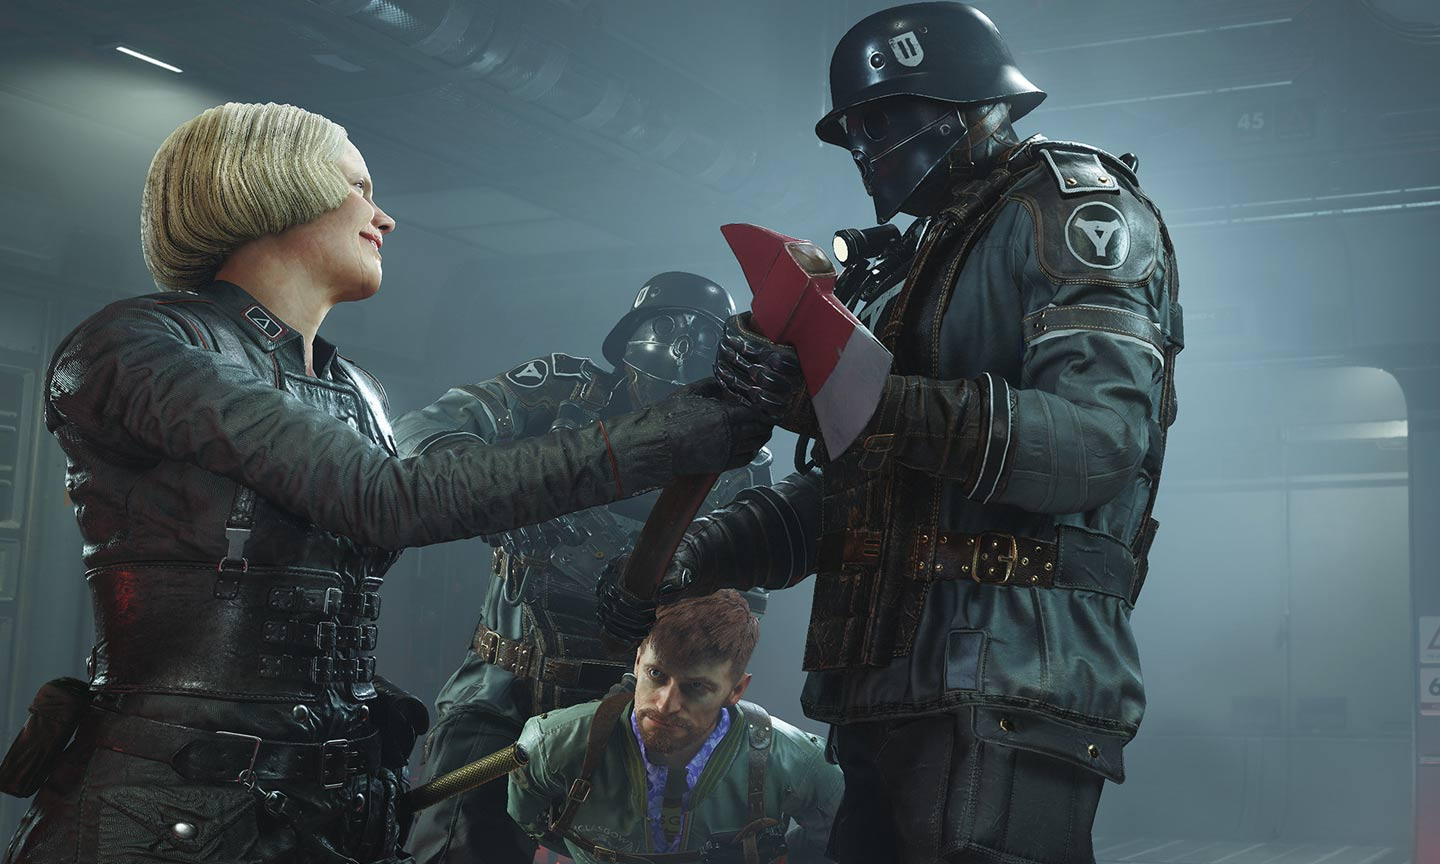 Wolfenstein 2: The New Colossus - (C) MachineGames, Bethesda Softworks